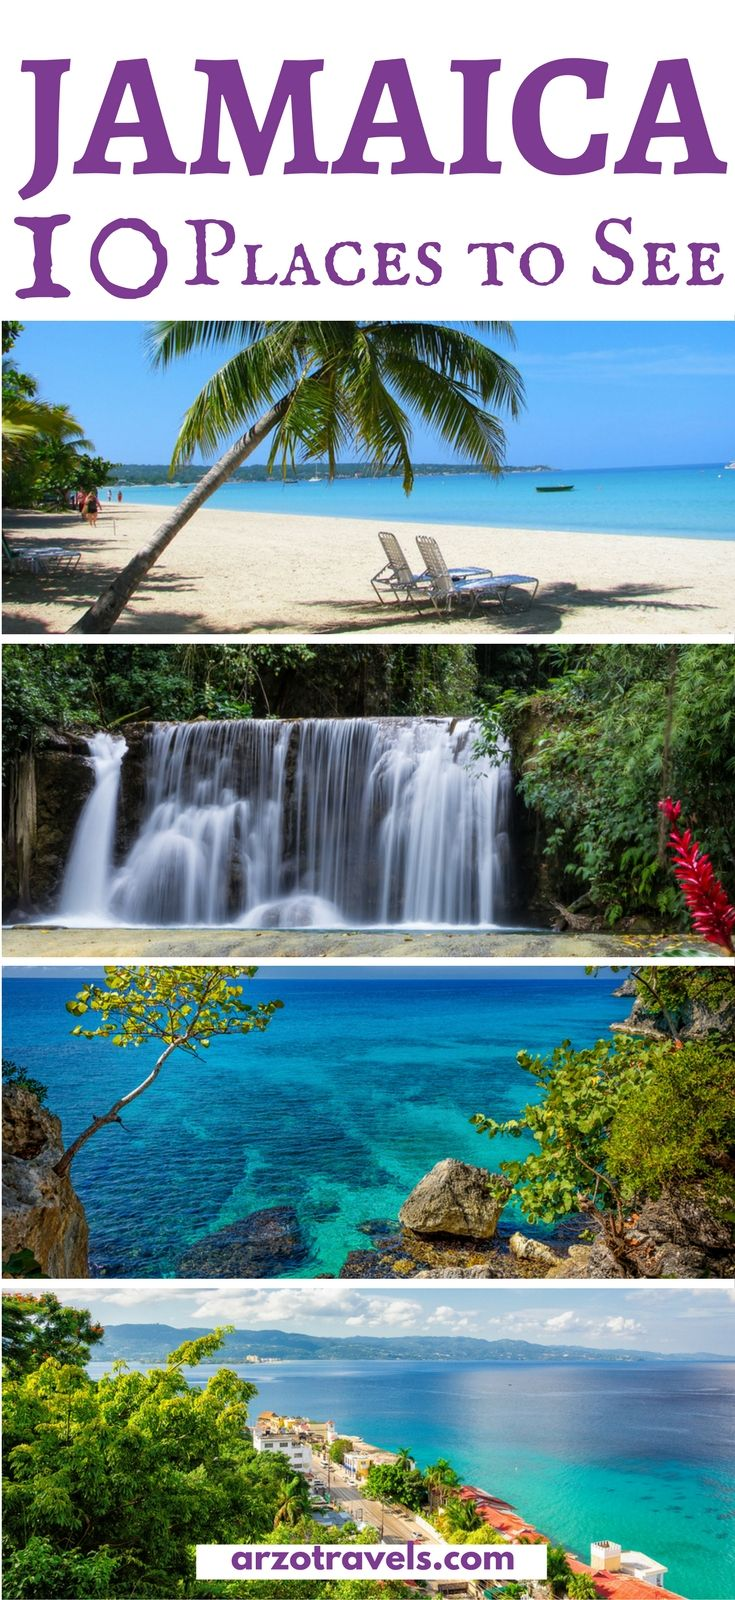 Best places to visit in Jamaica - things to do and places to see in Jamaica and all the important travel tips including security tips for female travelers.